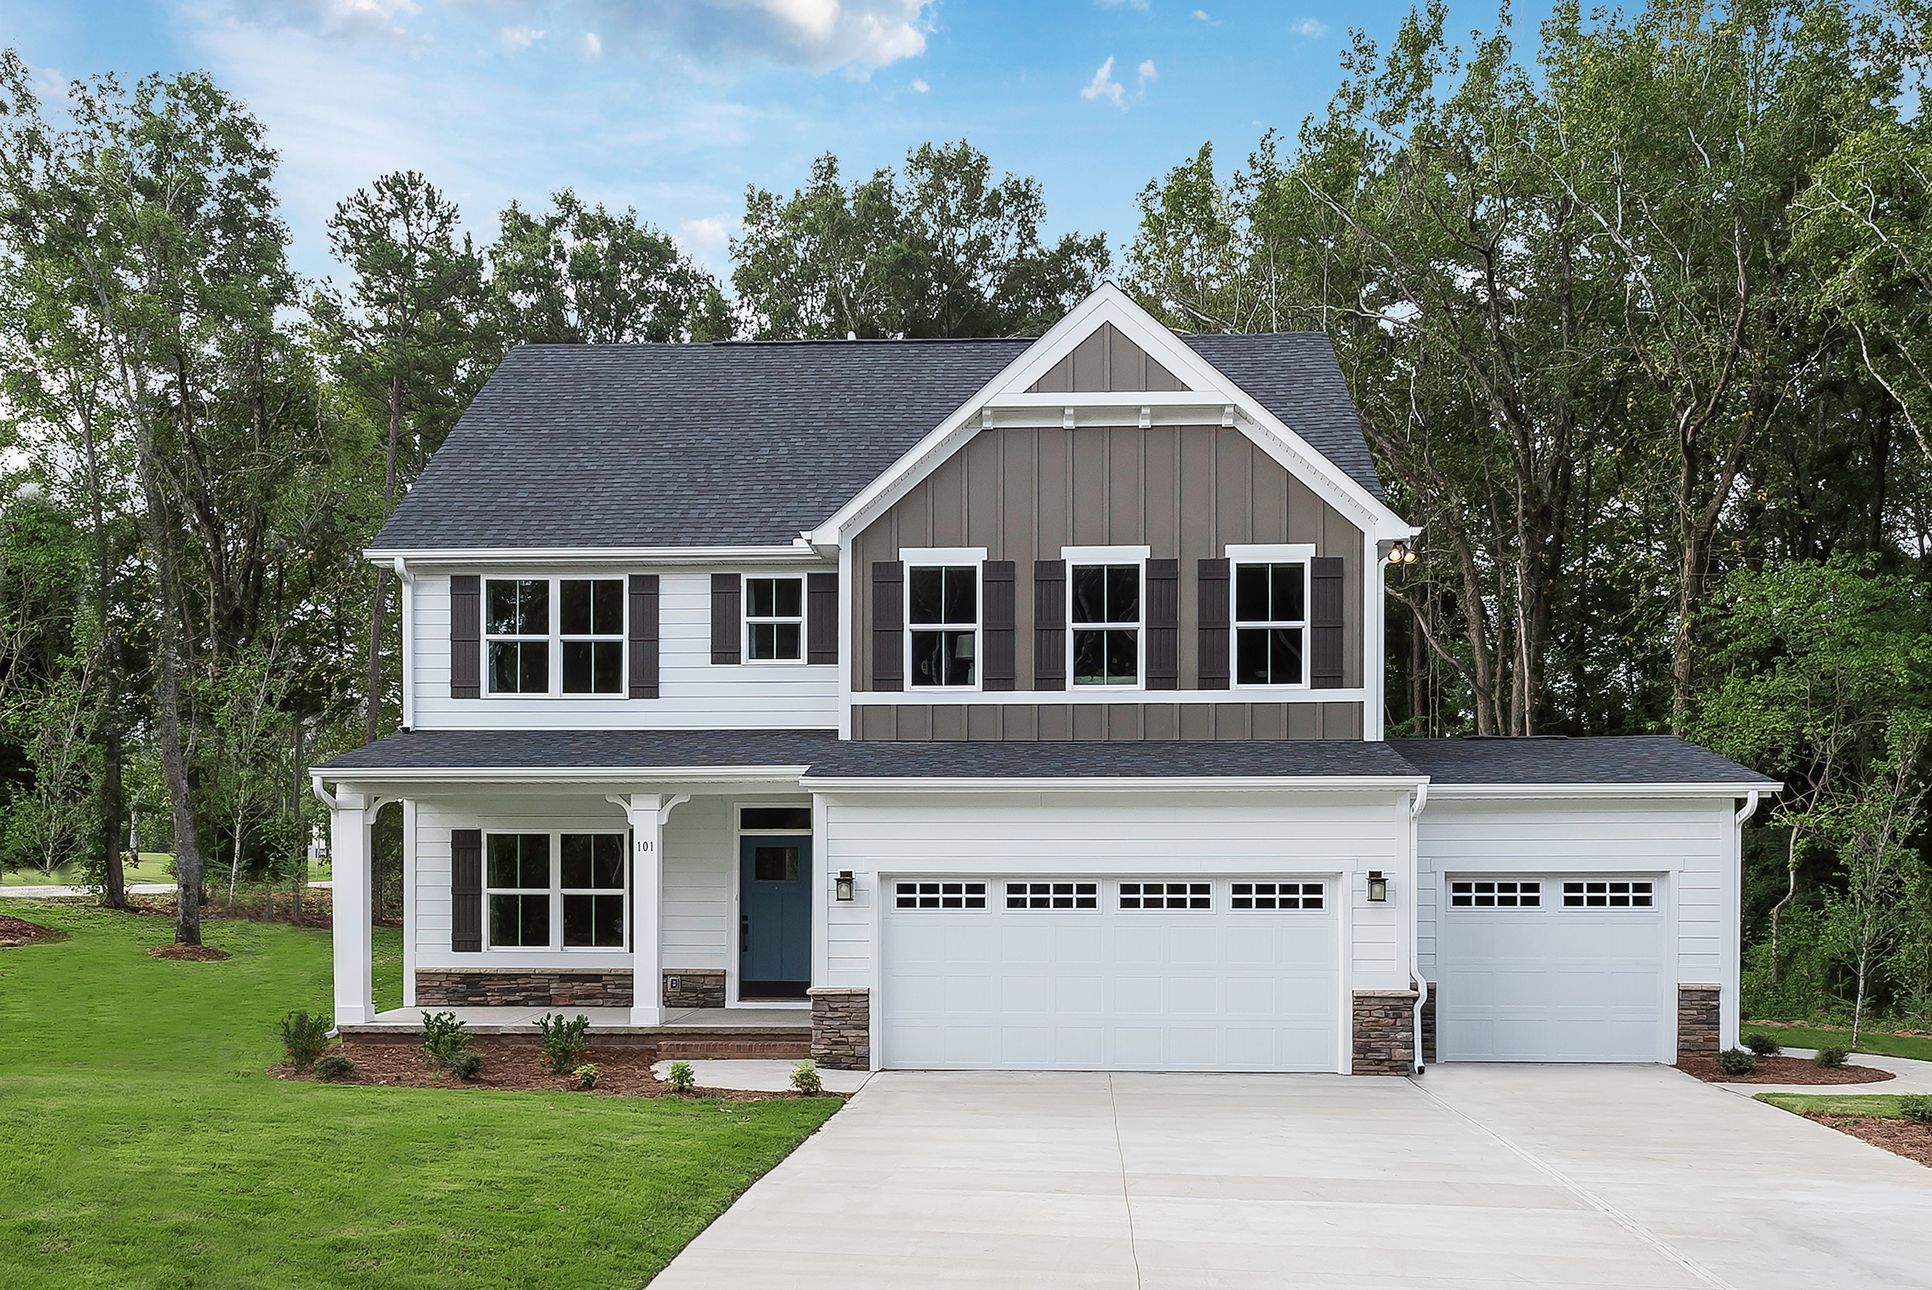 3-Car Garages Included & Wooded Homesites at Emory Trace:Westfield's newest community offers 2-story and ranch homes w included features & 3-car garages onpicturesquewooded homesties.Schedule your visit to tour our brand new Hudson model.